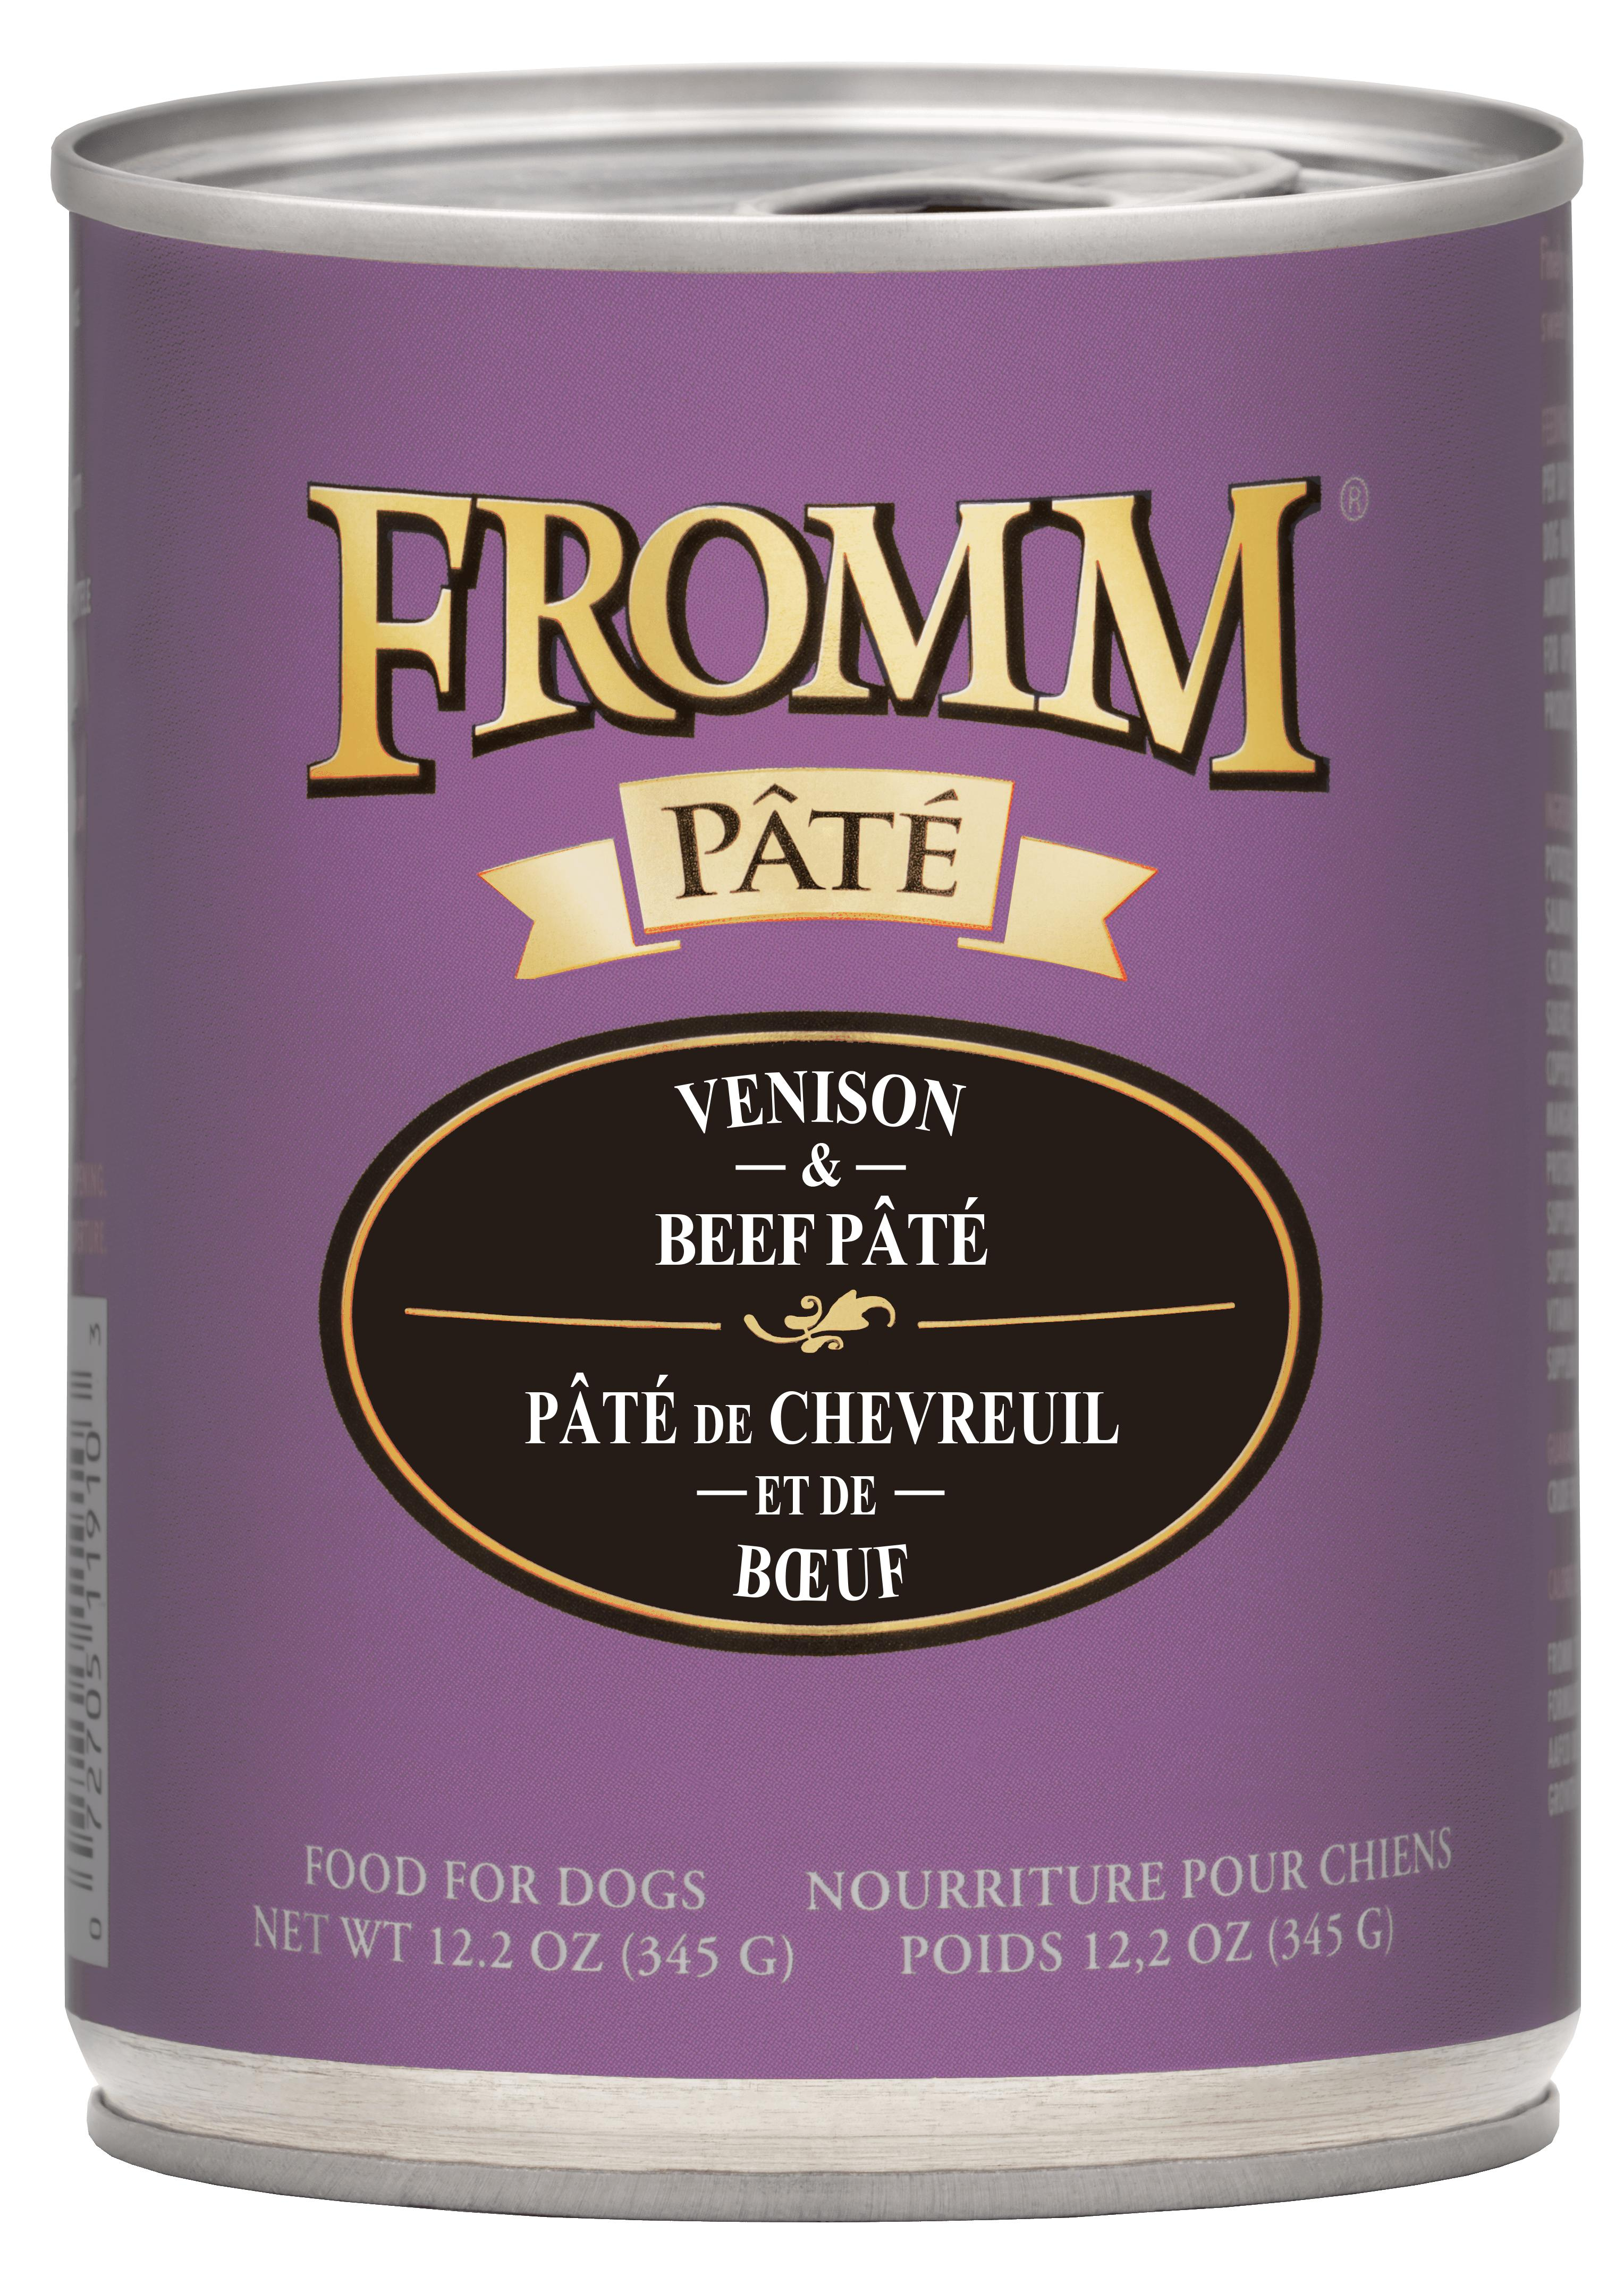 Fromm Venison & Beef Pate Canned Dog Food, 12.2-oz, case of 12